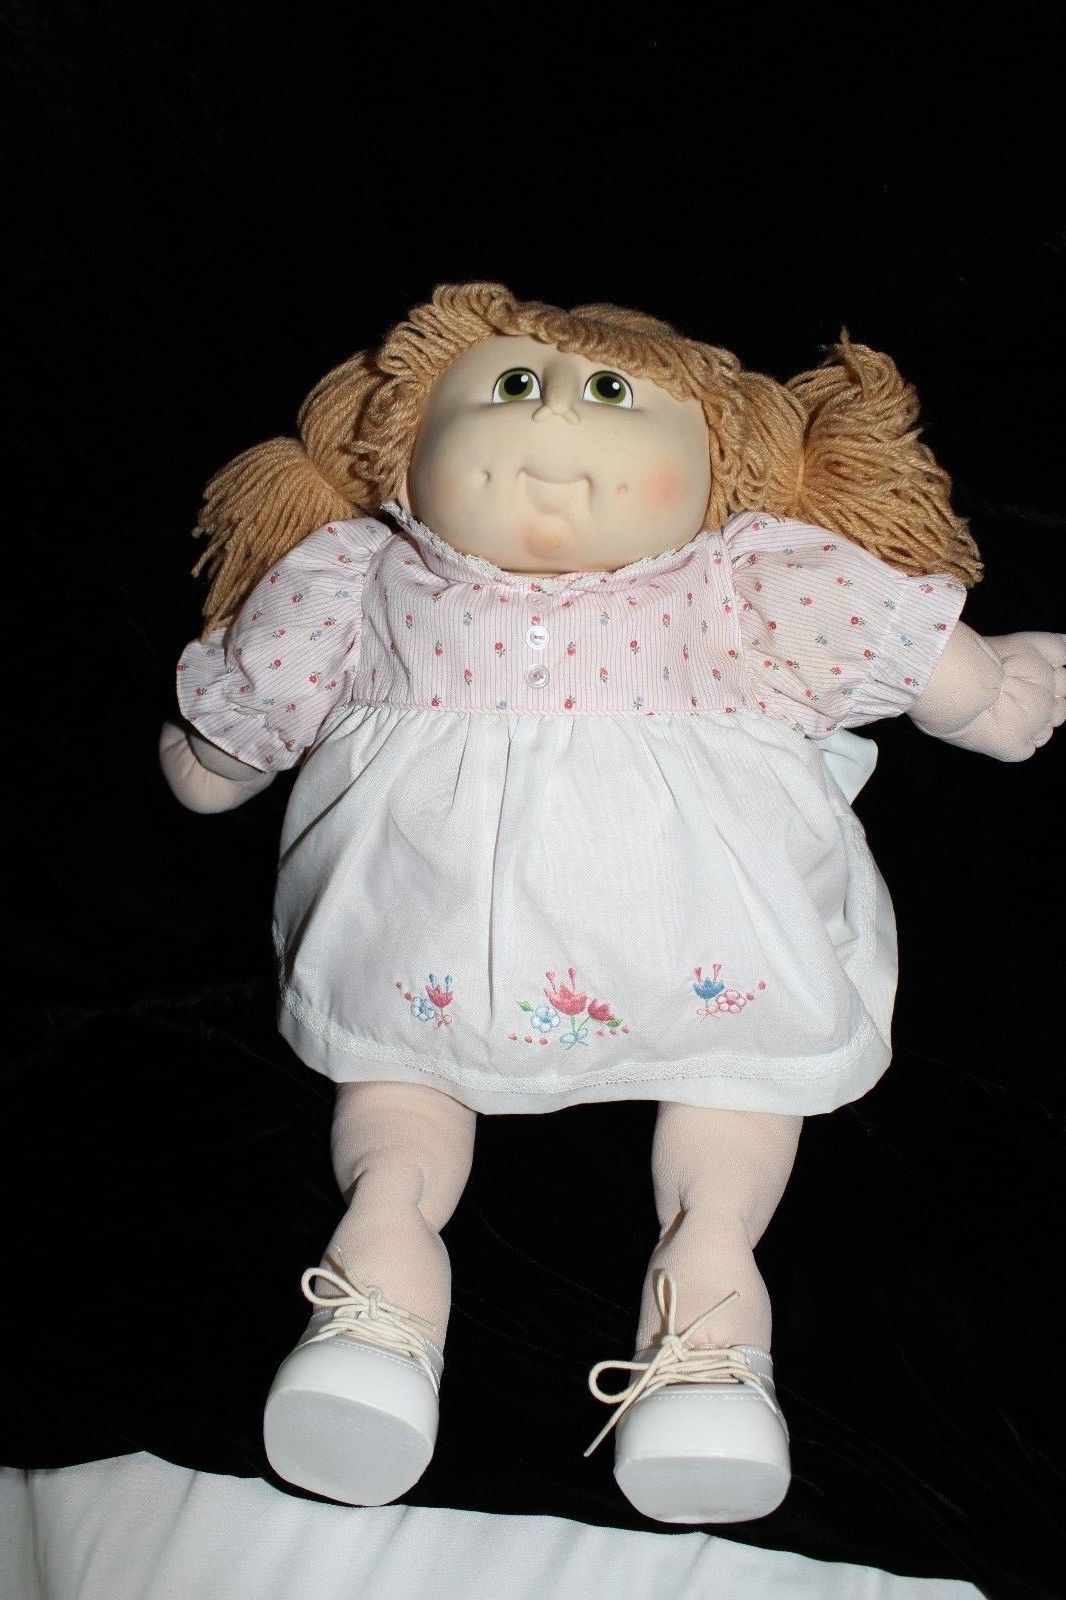 1984 Cabbage Patch Look Alike Original Doll Baby Martha Nelson Thomas  Vintage | eBay | Cabbage patch dolls, Vintage cabbage patch dolls, Cabbage  patch babies